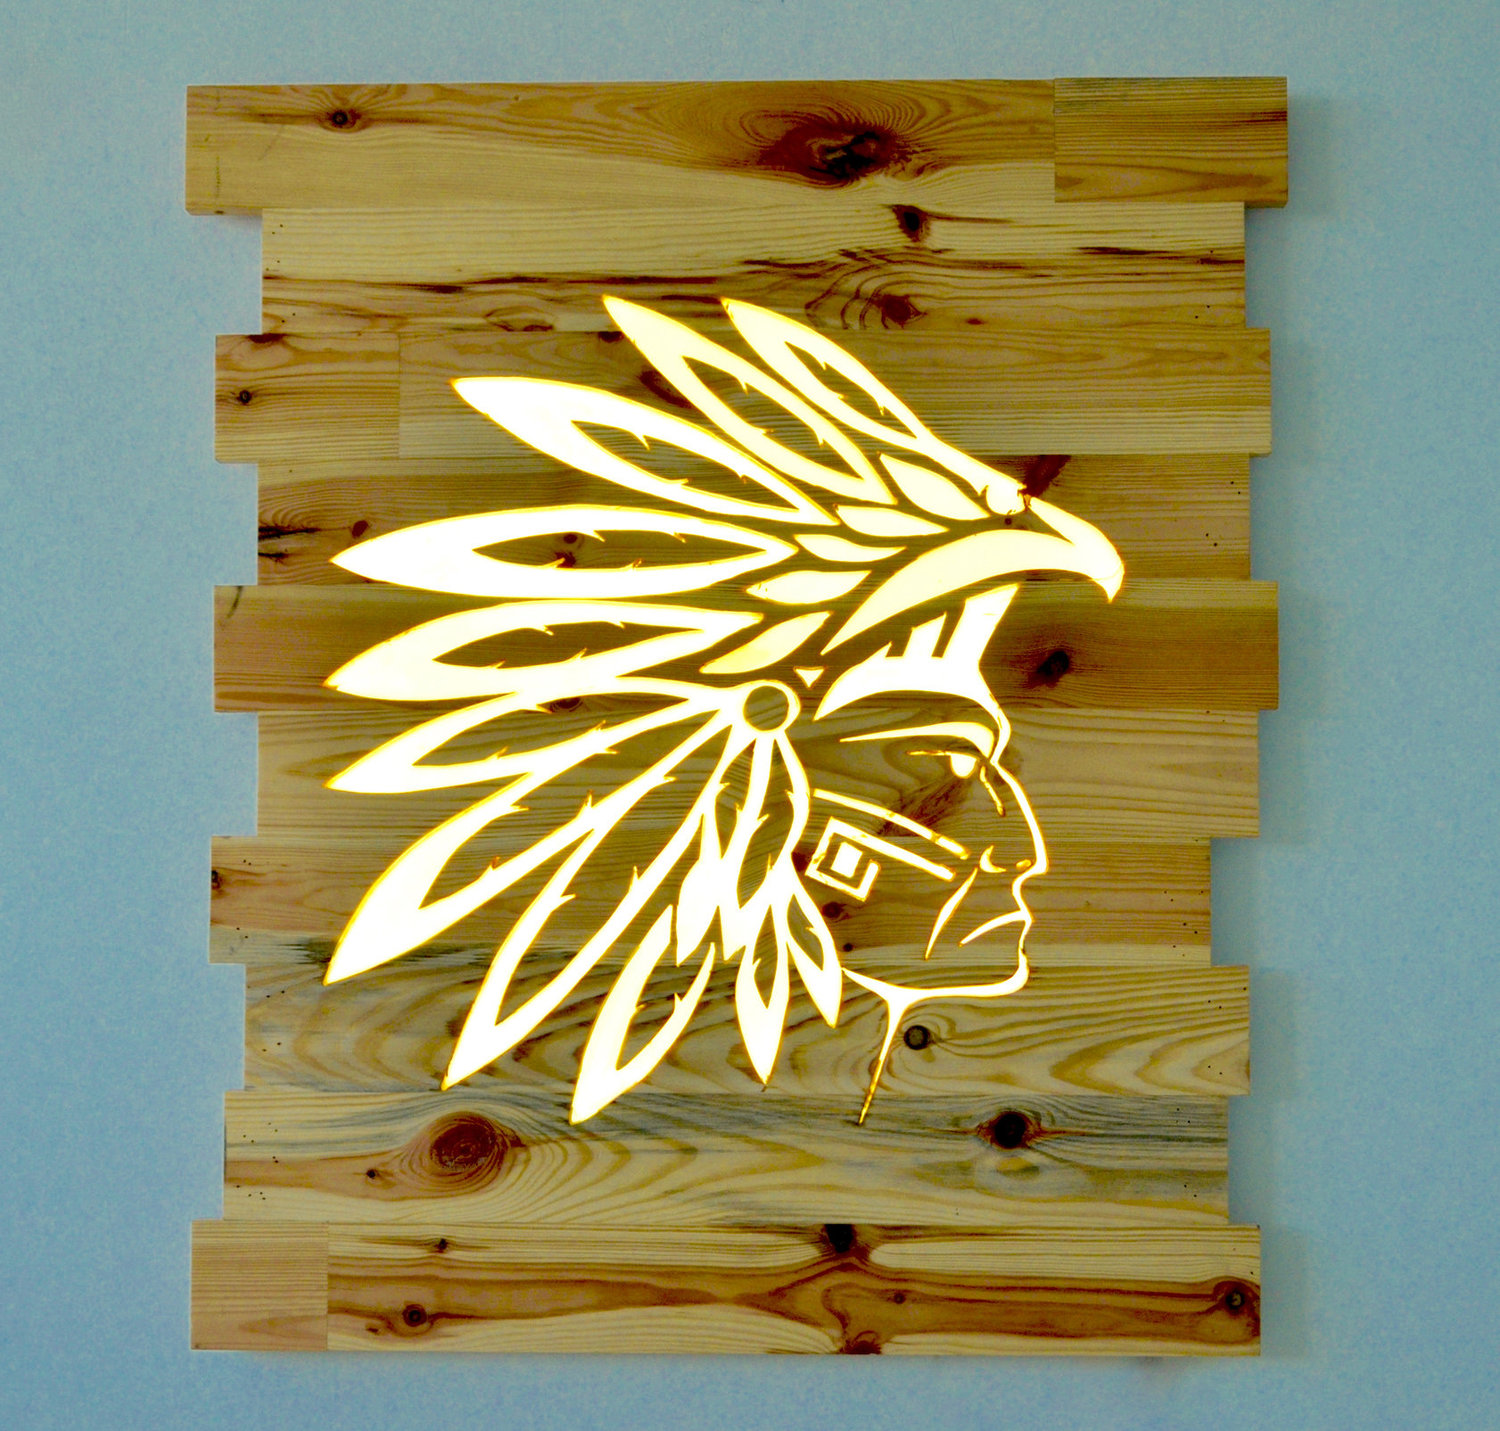 WOOD FIXTURE - ITEM NO. 2: RECYCLED WOOD NATIVE INDIAN WALL LIGHT ...